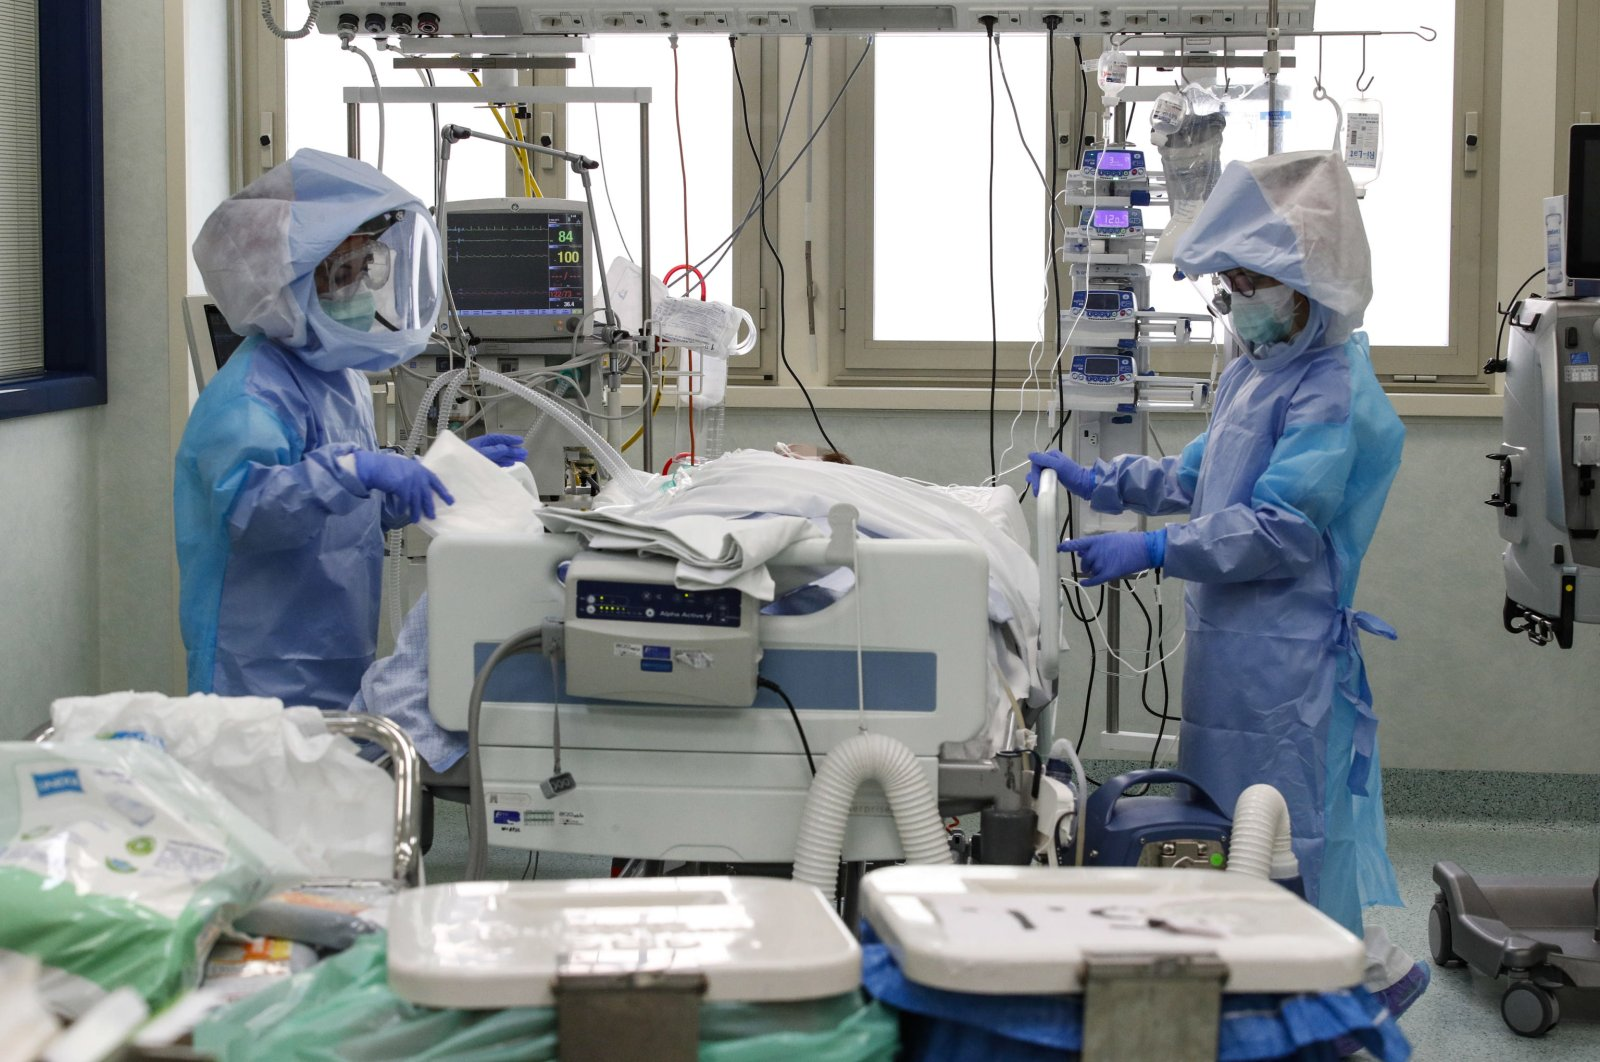 Healthcare professionals in protective suits at work in the intensive care unit (ICU) for patients infected with COVID-19 at the Policlinico di Tor Vergata hospital, in Rome, Italy, April 10, 2020. (EPA Photo)